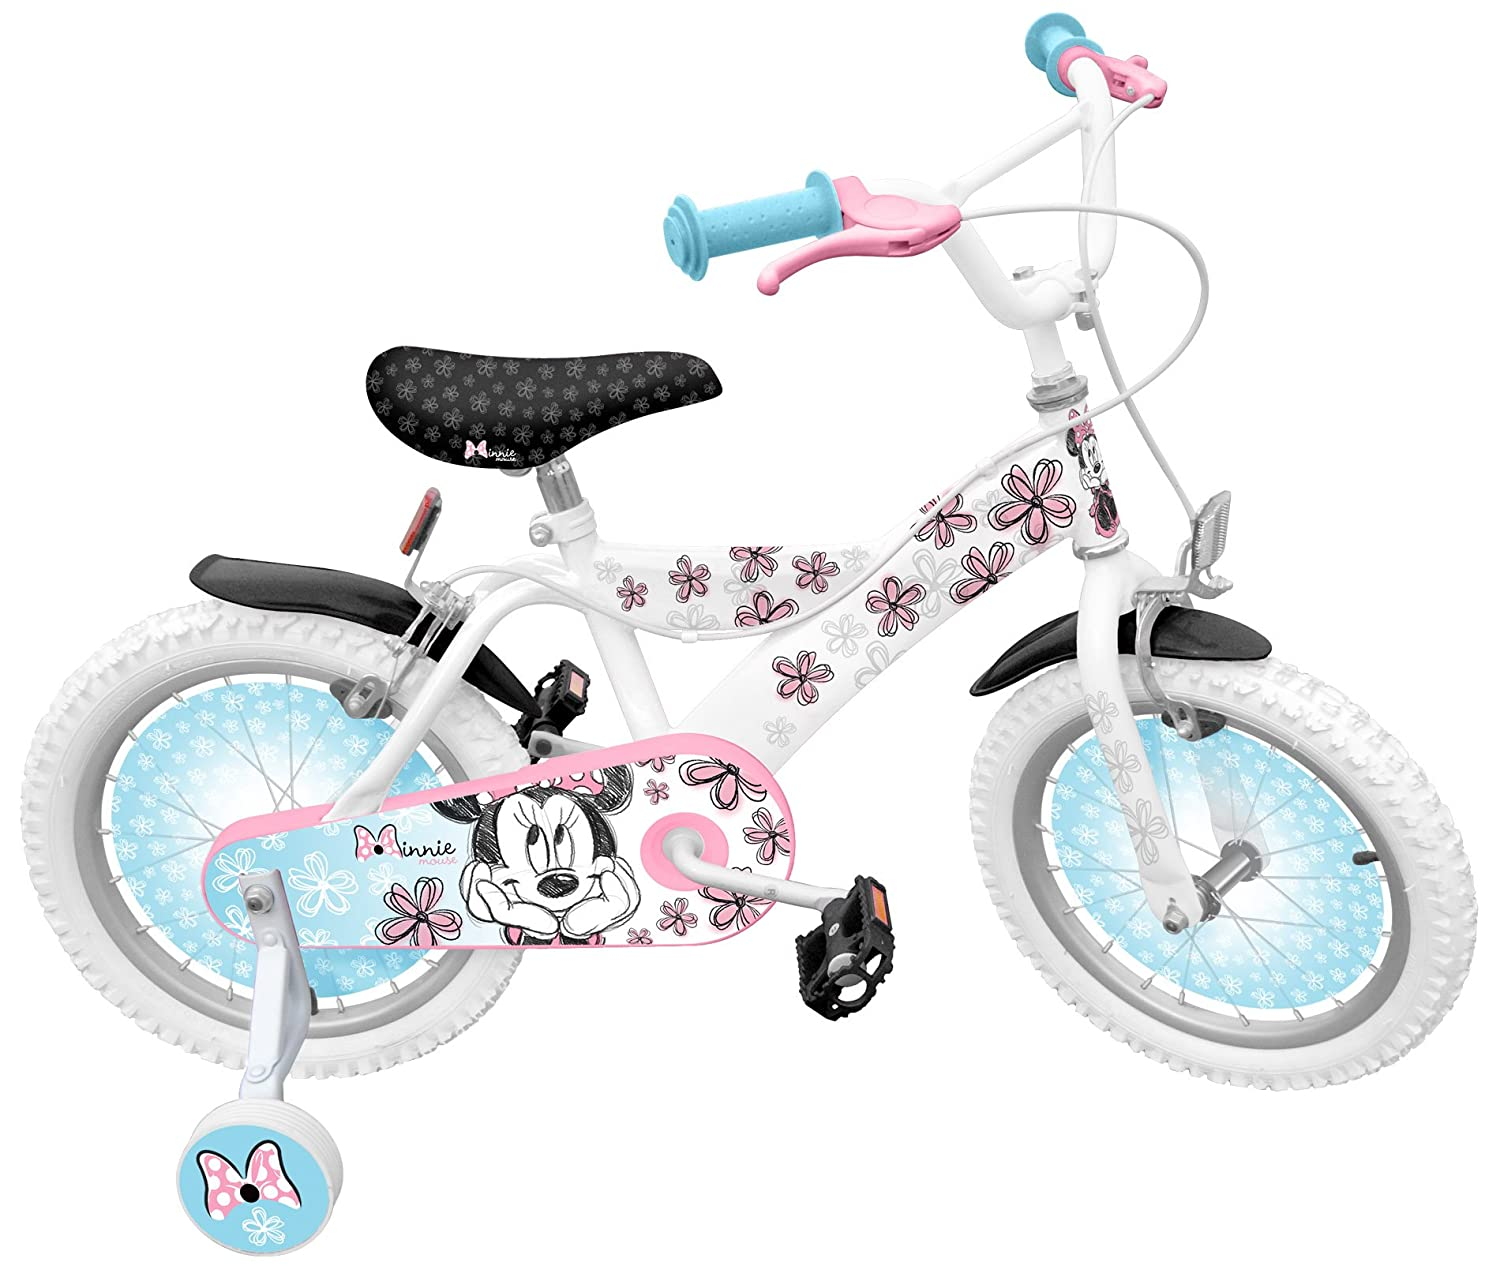 Disney Frozen Cars Minnie Mickey Star Wars Metal Bell Girls Boys Bike Bicycle